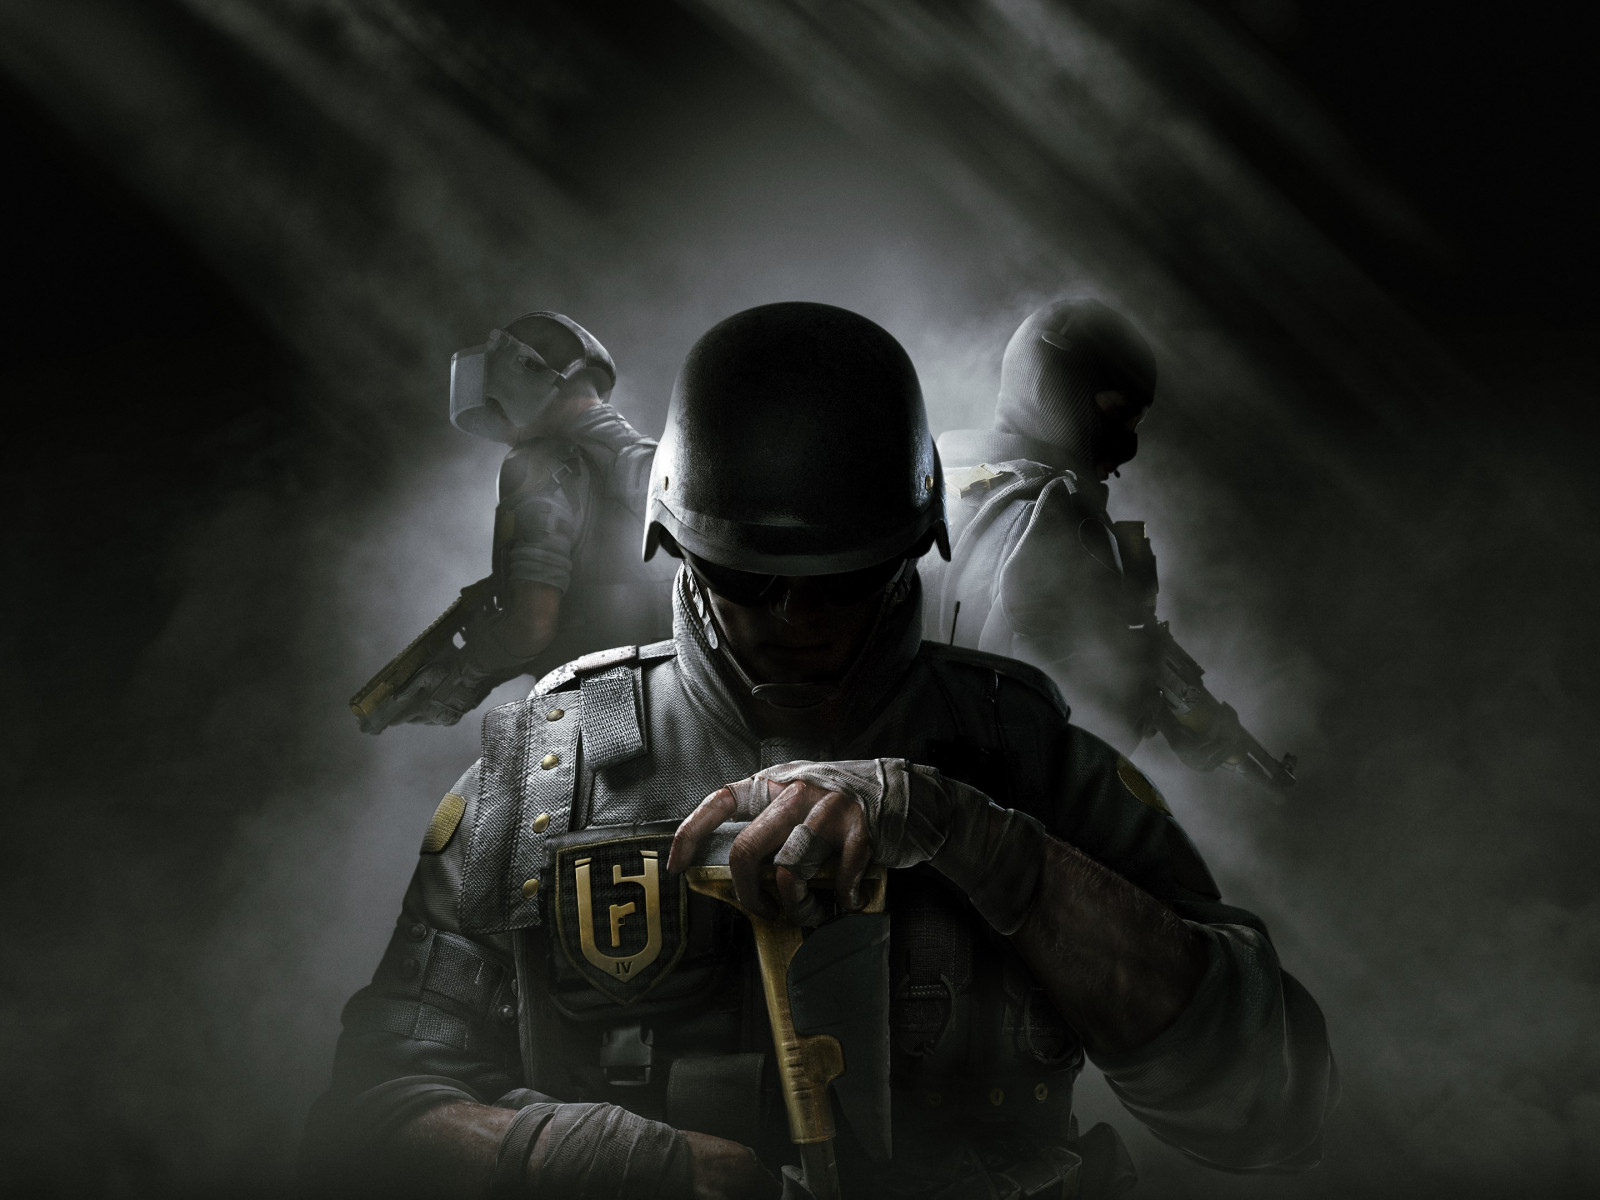 Rainbow Six Siege wallpaper 1600x1200